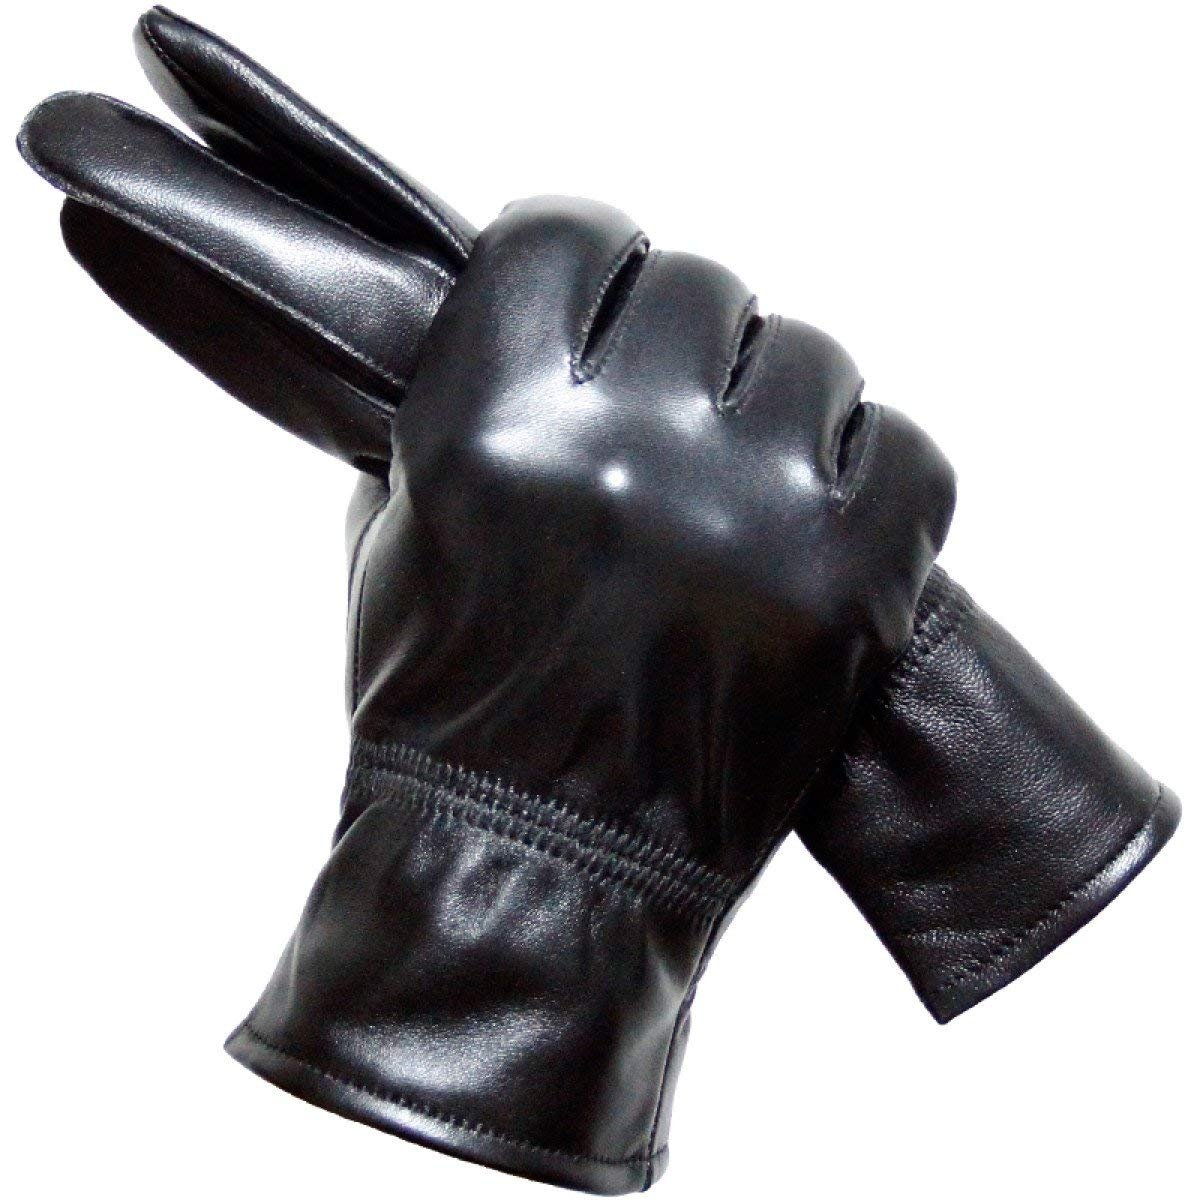 CWJ Leather Gloves Male Thick Warm Gloves Thin Section,Black,X-Large